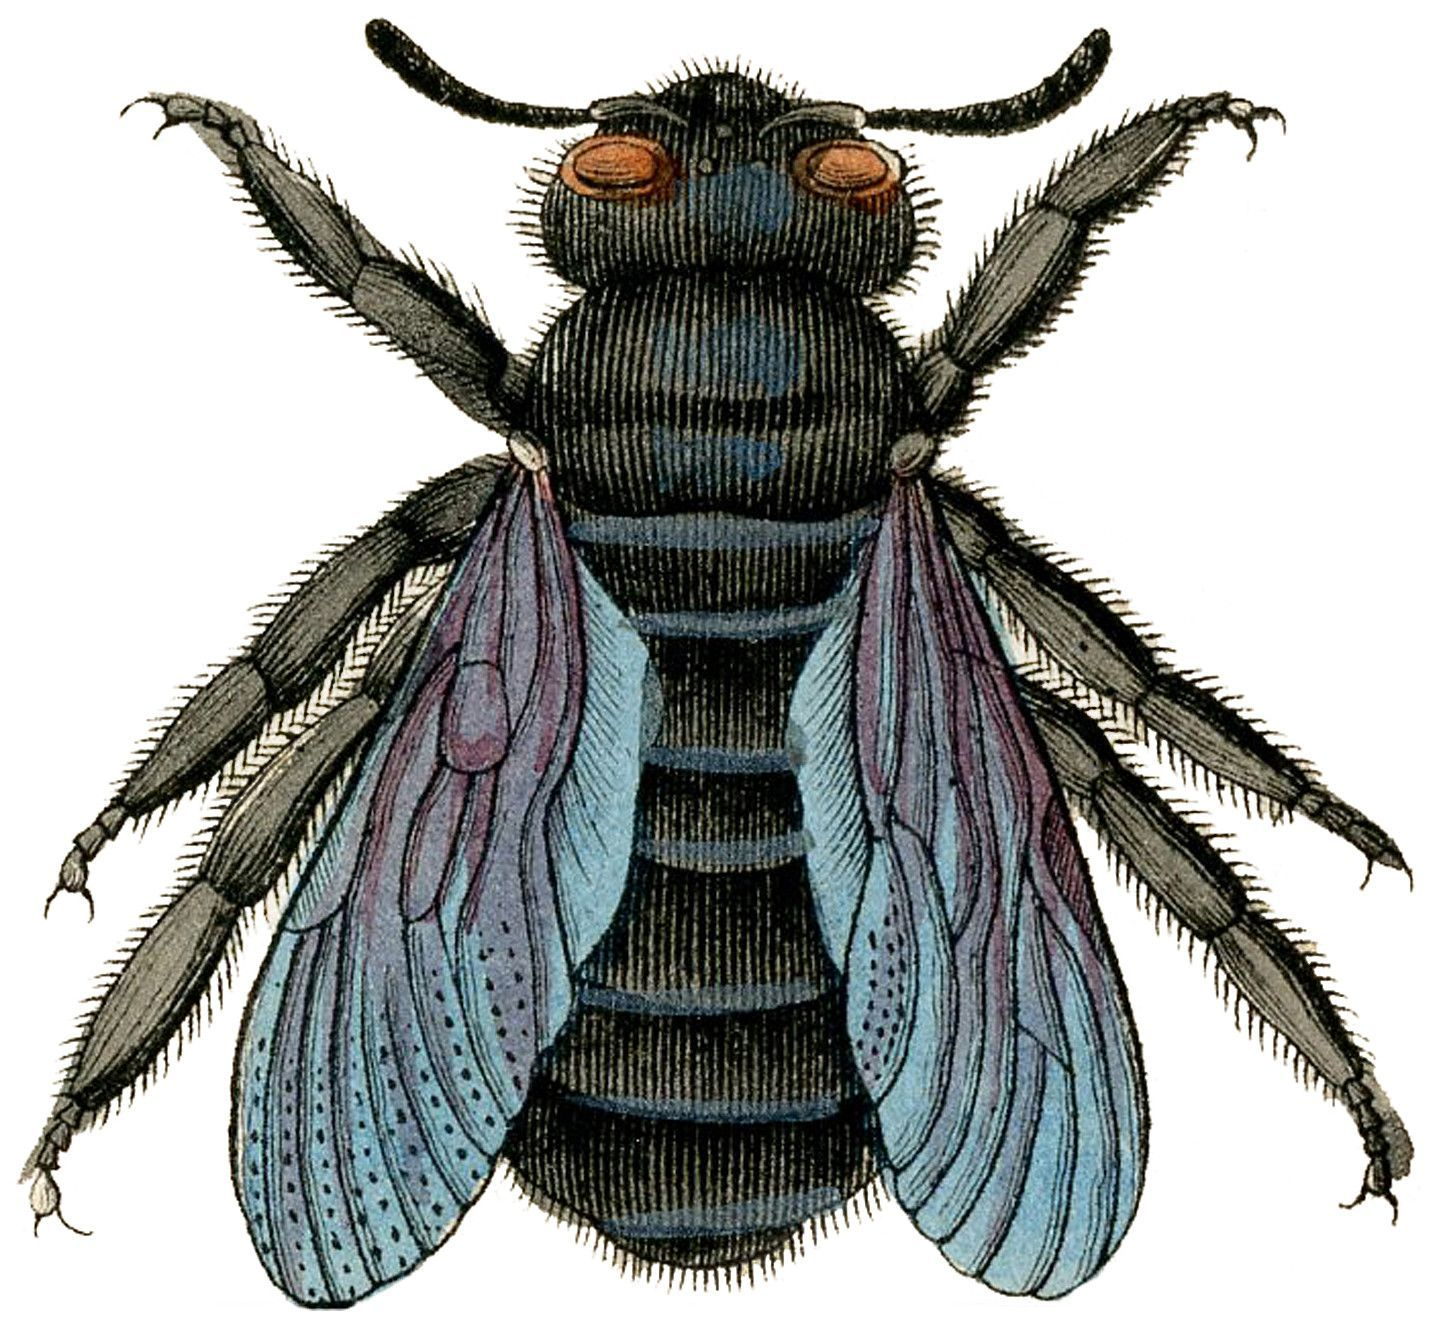 Bees clipart carpenter bee. Set of waterproof temporary